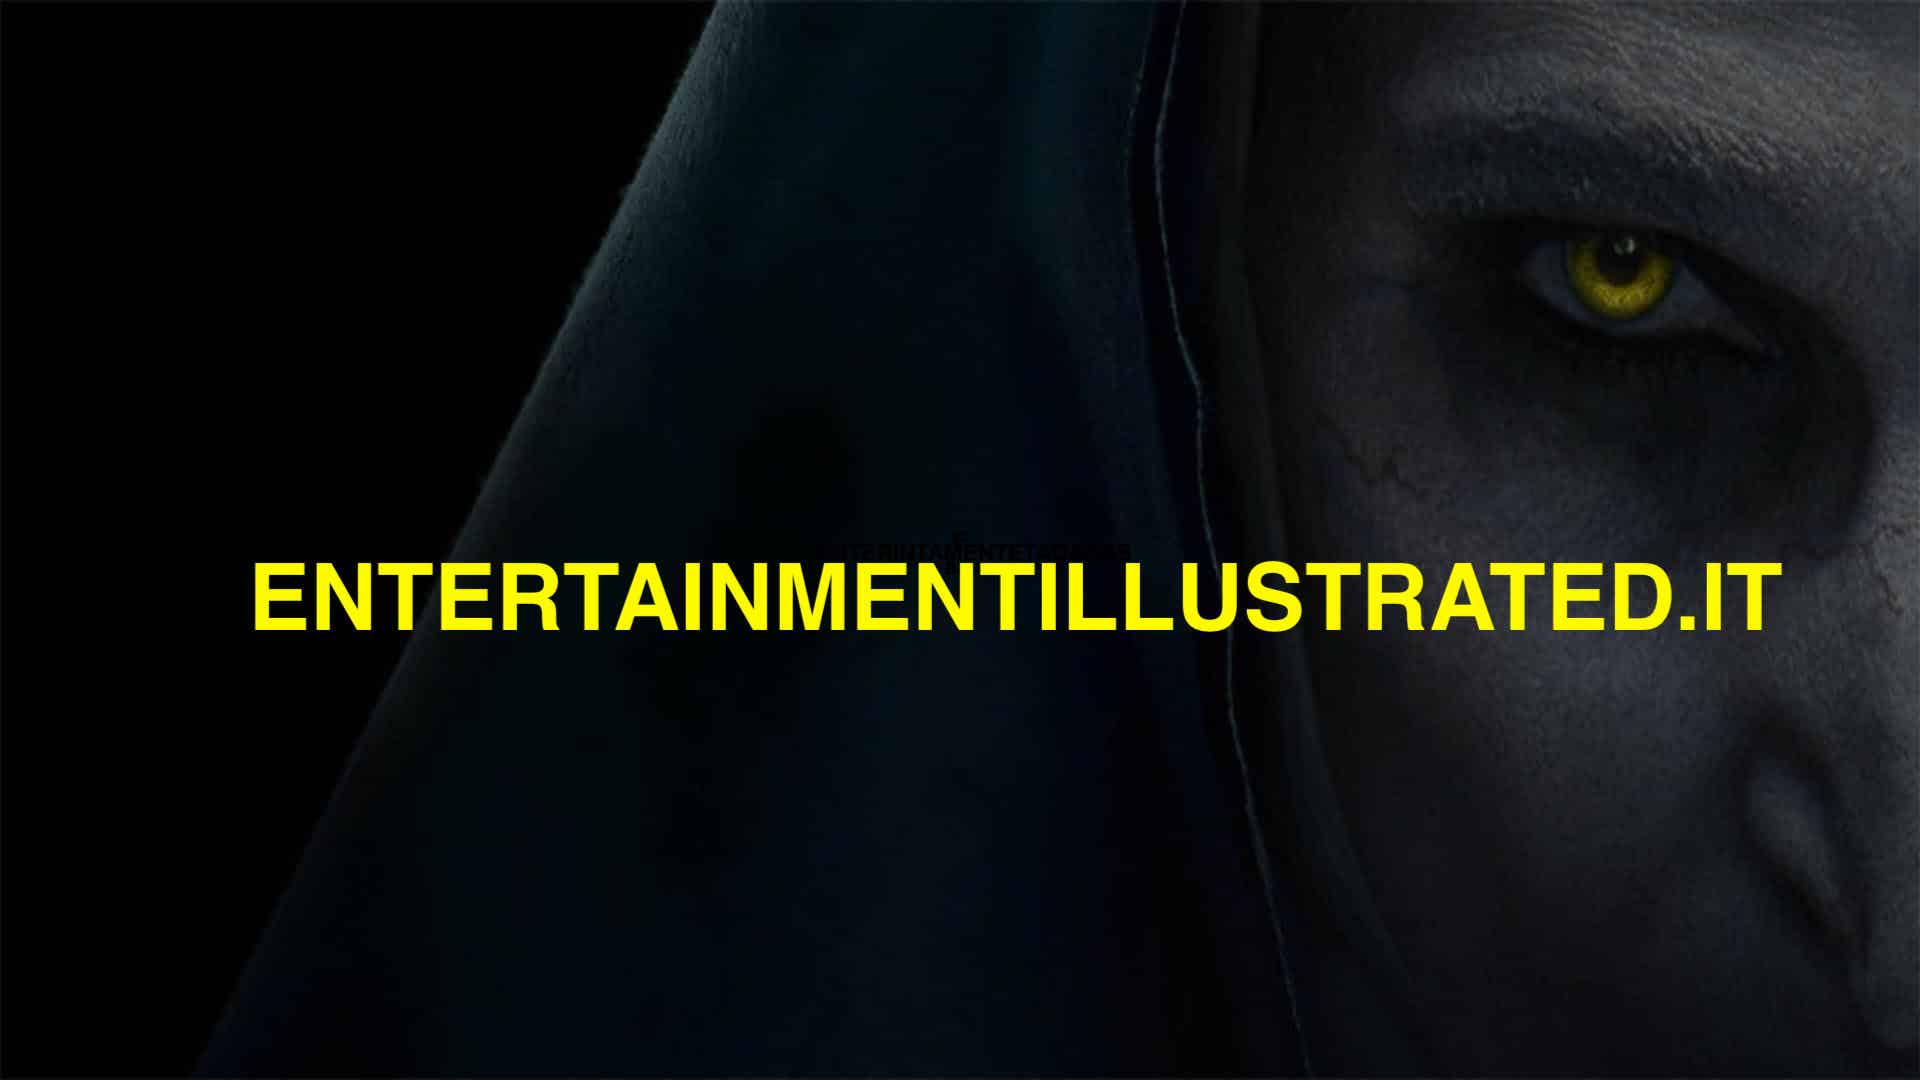 Sfoglia l'ultimo numero di Entertainment Illustrated